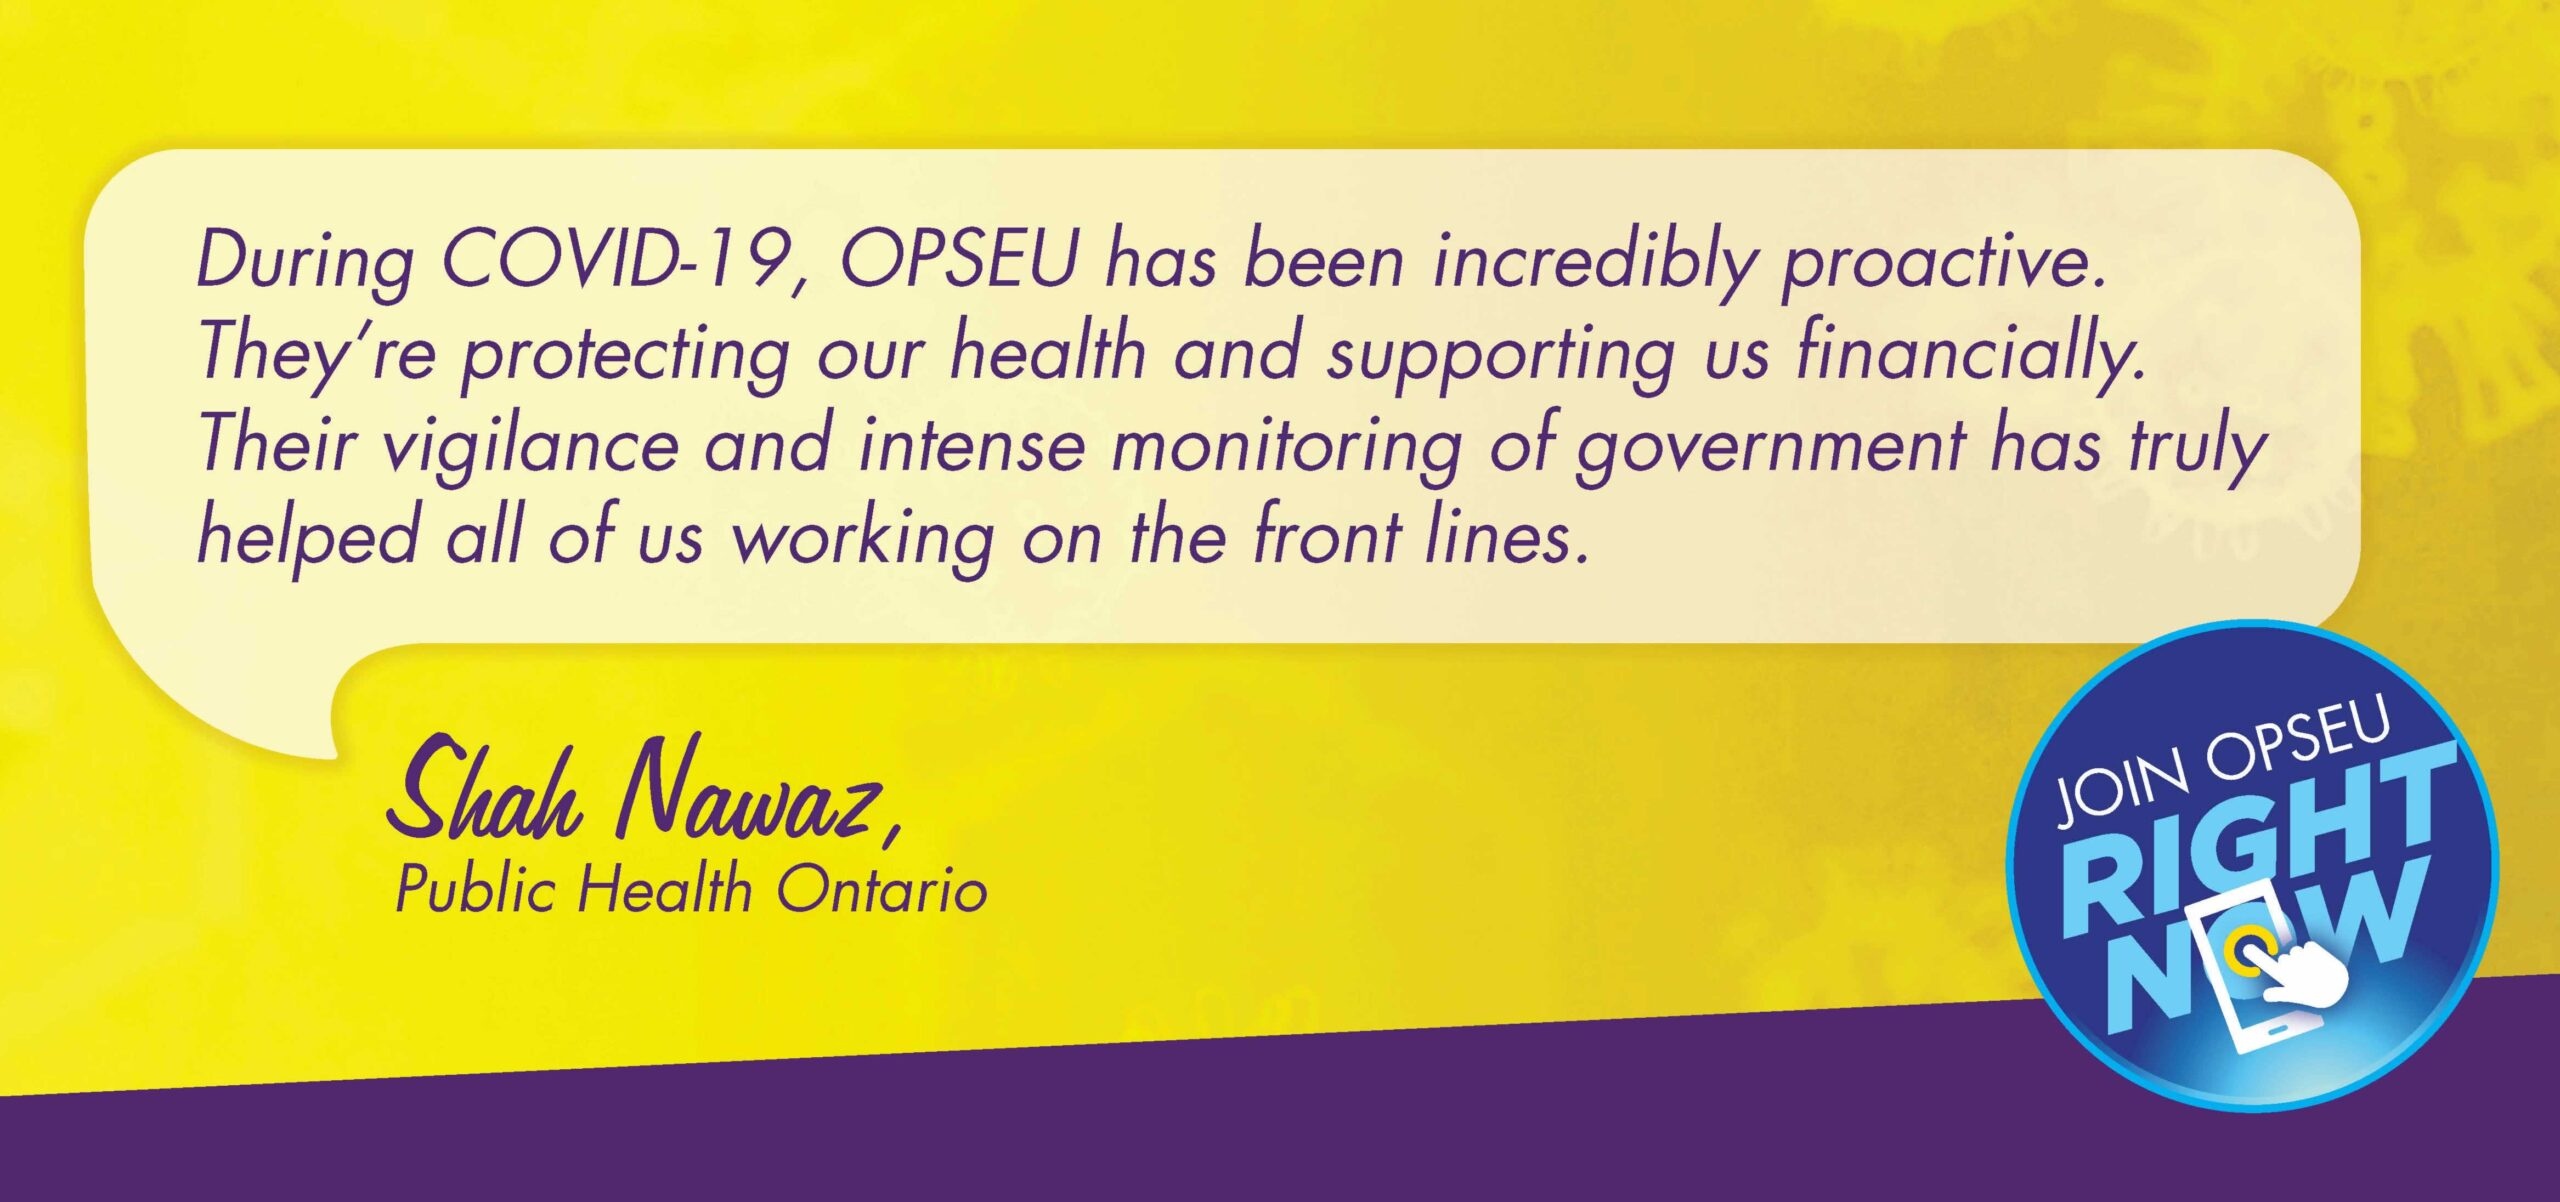 Lifelabs Testimonial: OPSEU has been proactive, protecting our health and supporting us financially. Their intense monitoring of government has helped all who work on the front lines